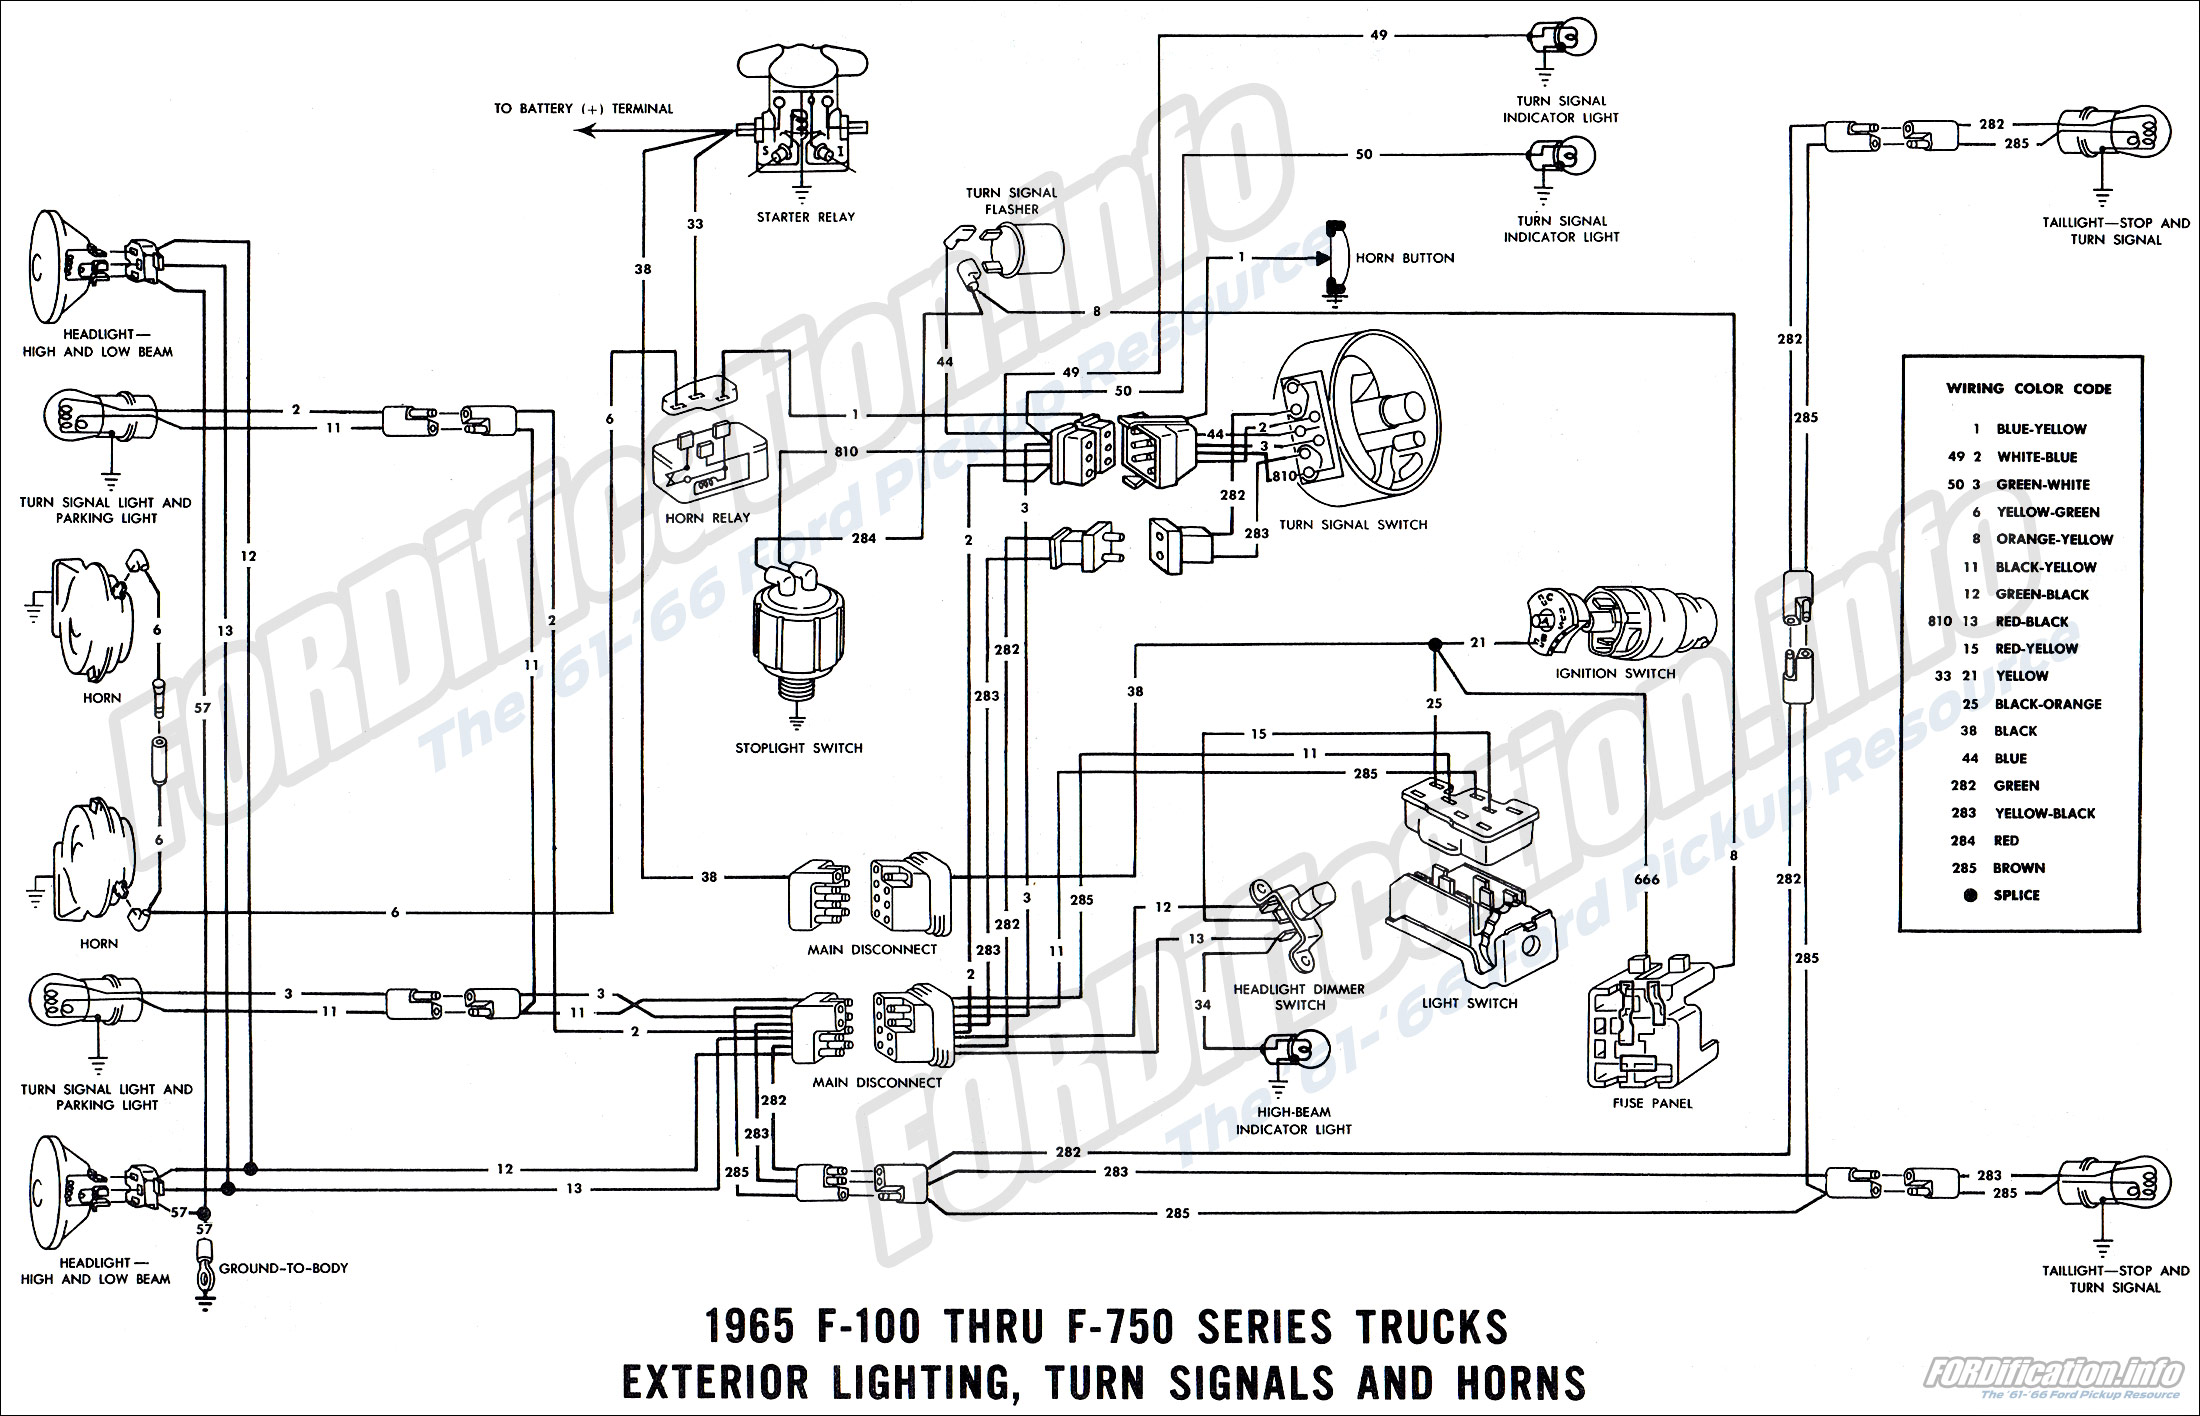 1965 f100 wiring diagram   24 wiring diagram images